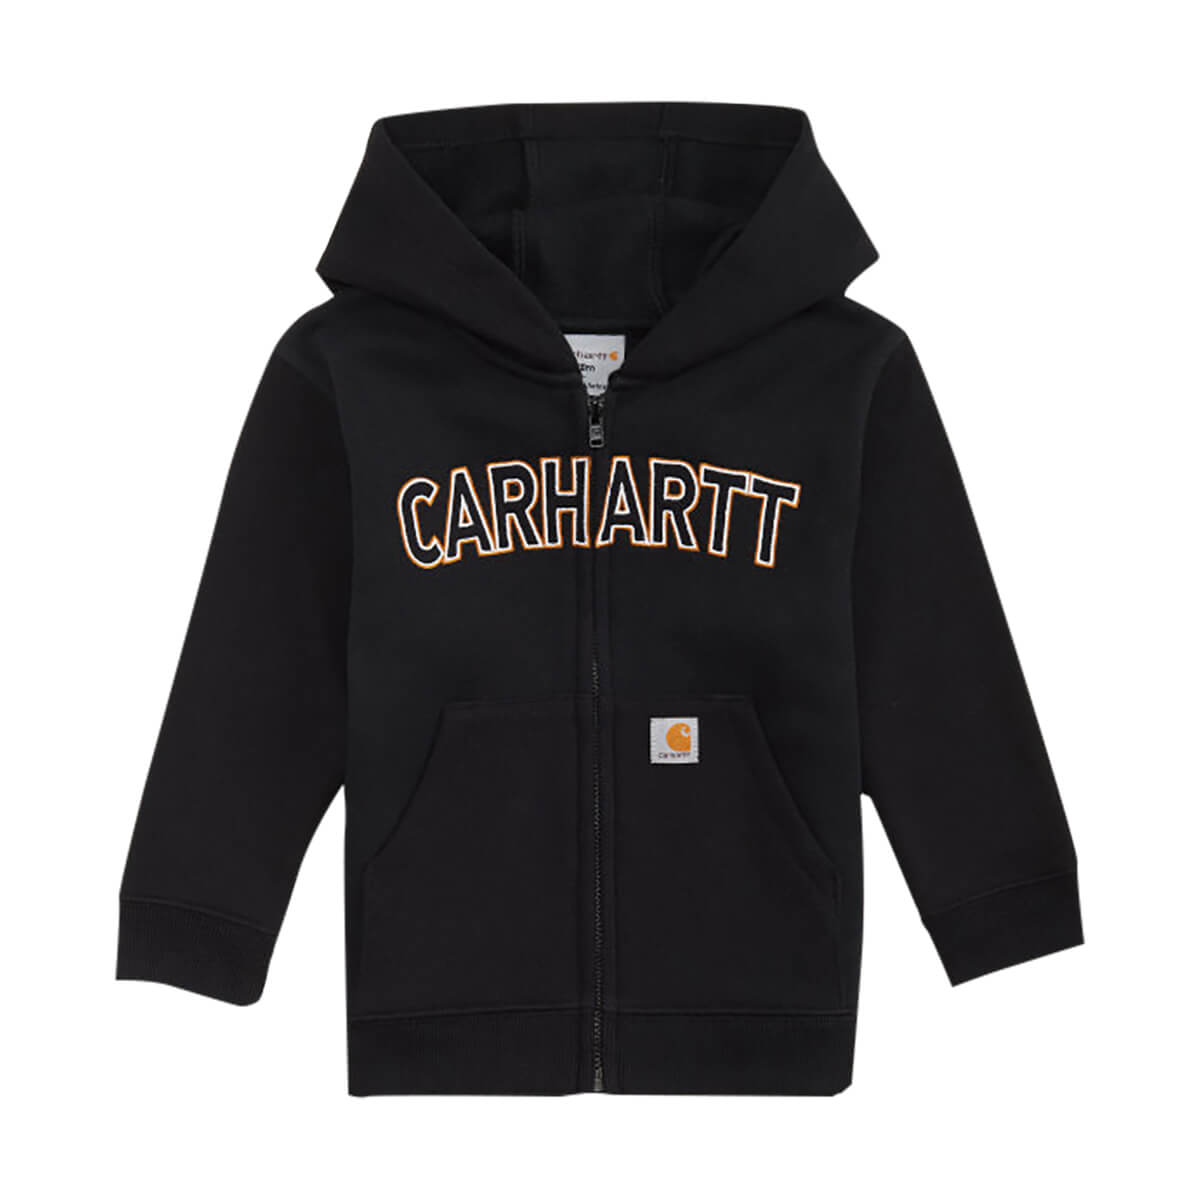 Carhartt Toddler Boys' Logo Fleece Sweatshirt Caviar Black - 4T